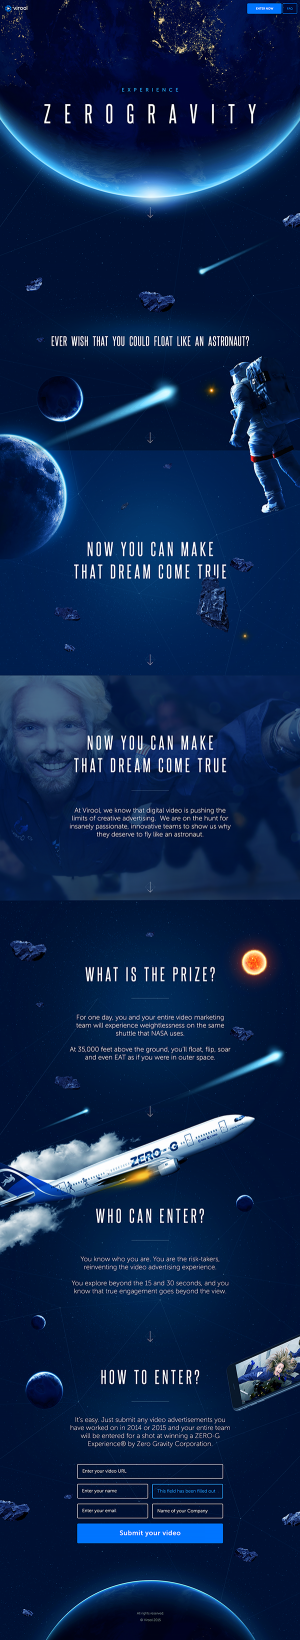 Zero Gravity Website by Serge Vasil